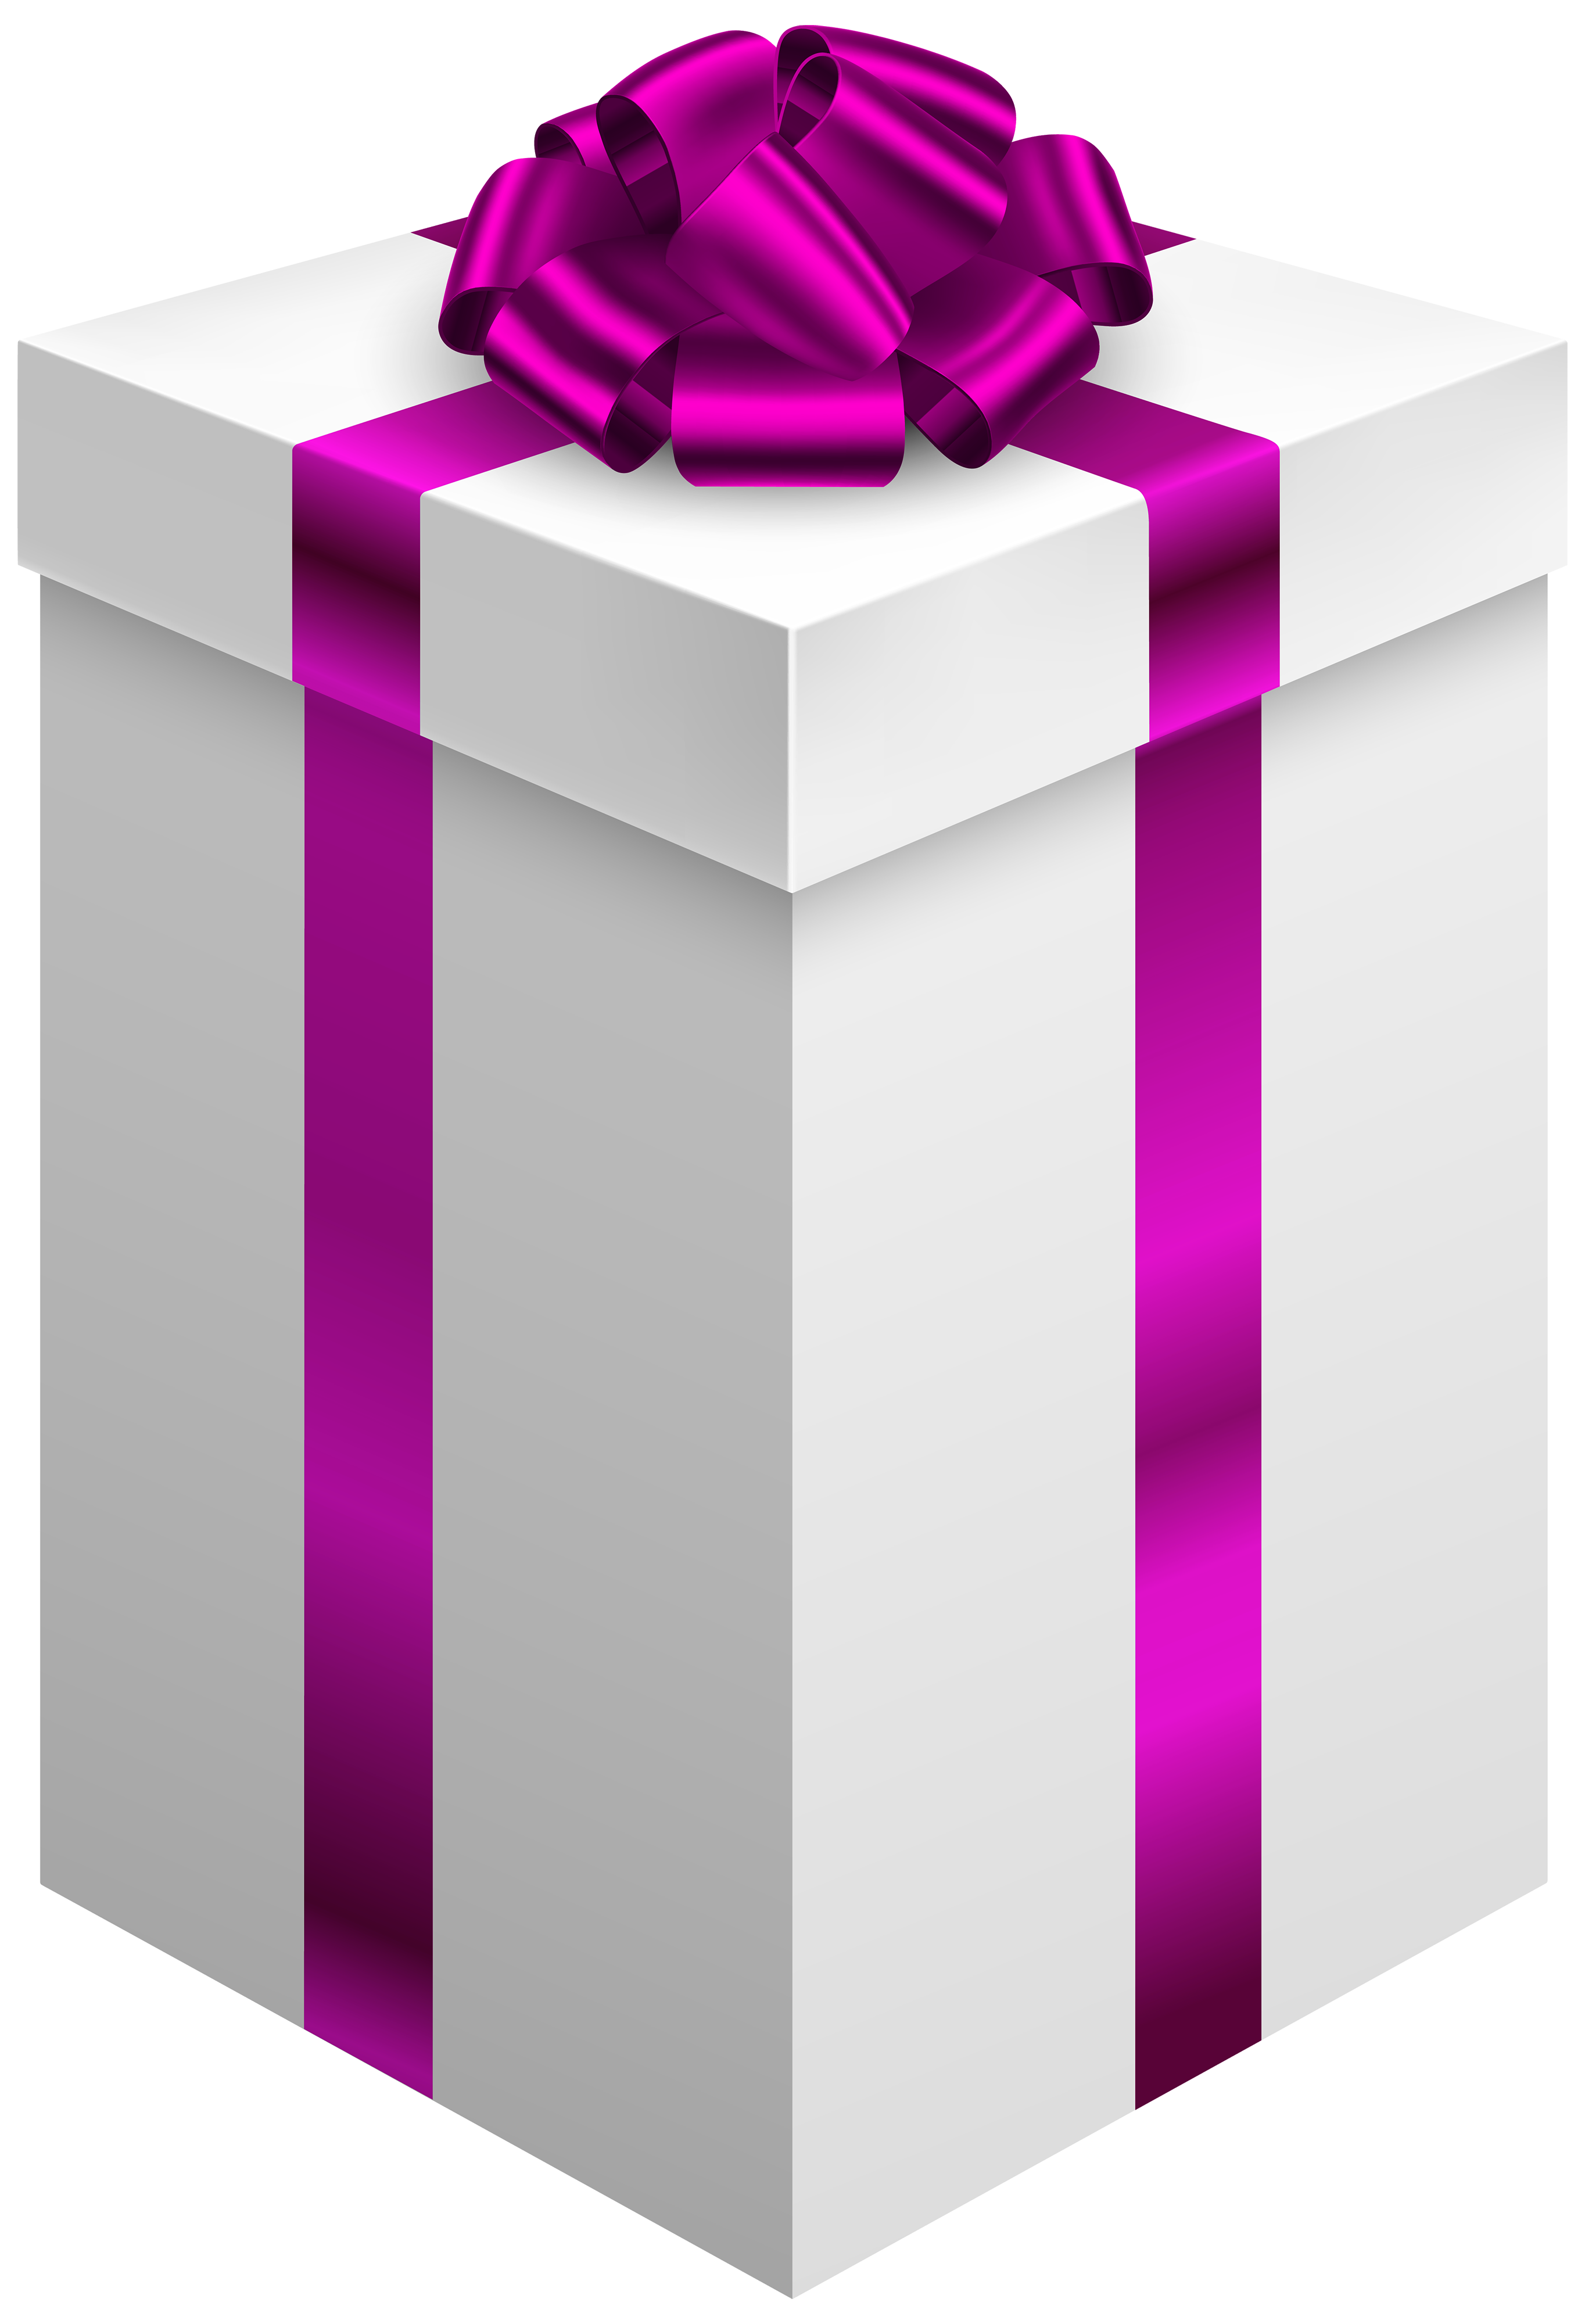 Purple clipart present. Gift box with bow